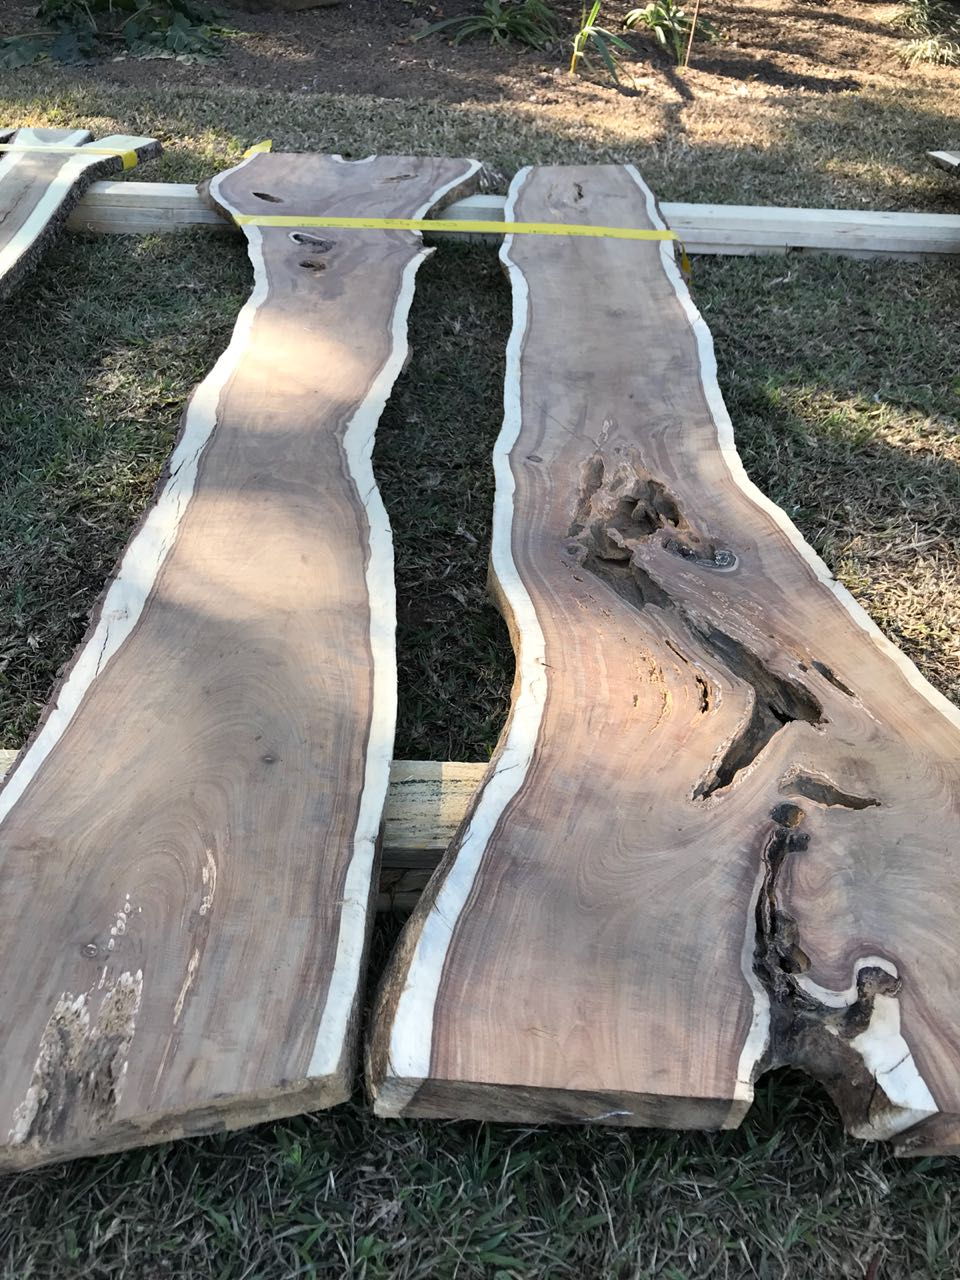 STUNNING TAMBOTI SLABS JUST IN. DON'T MISS OUT!